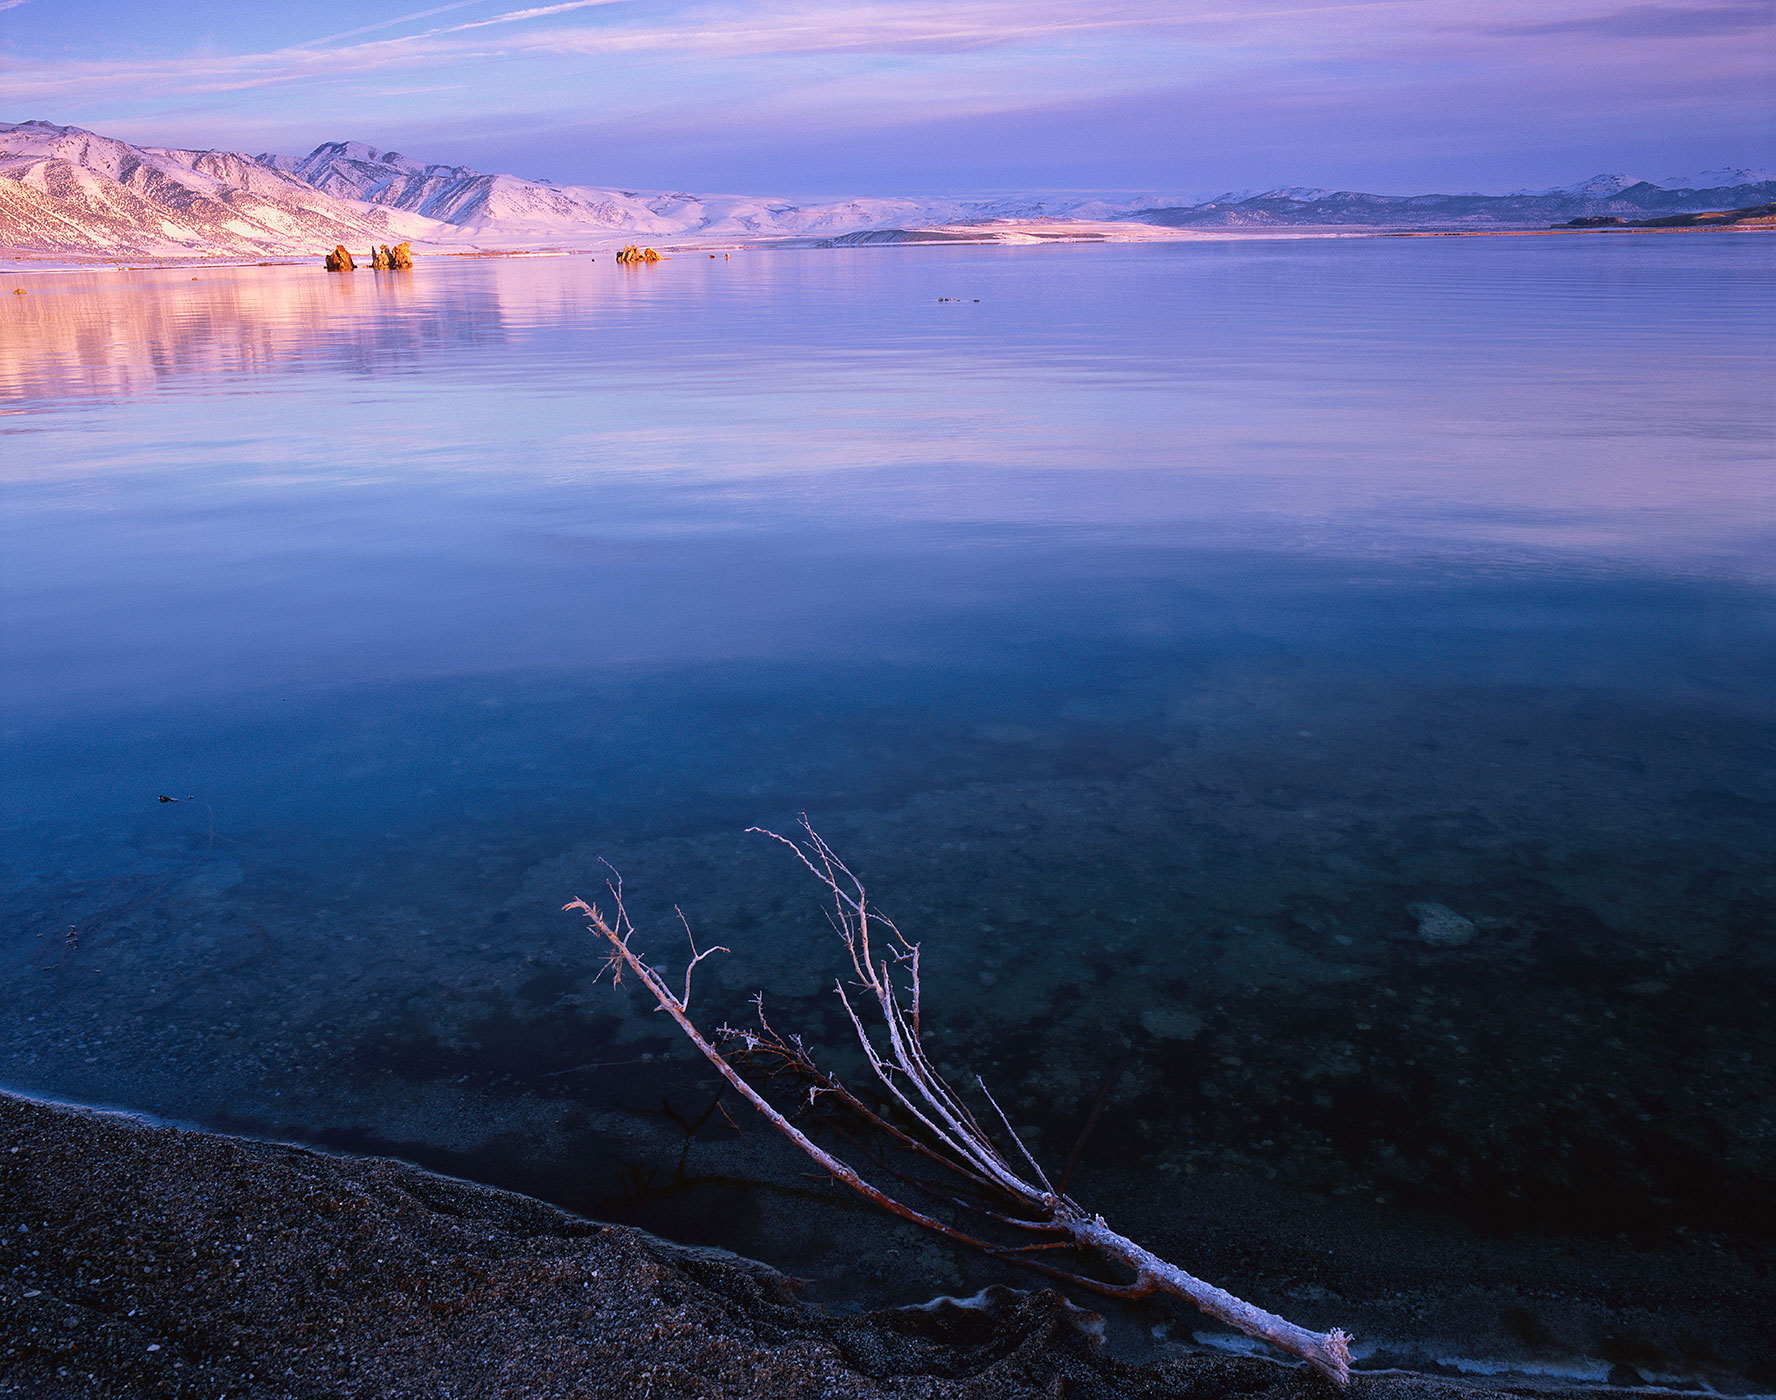 828 Mono Lake, Sunrise, Inyo National Forest, California